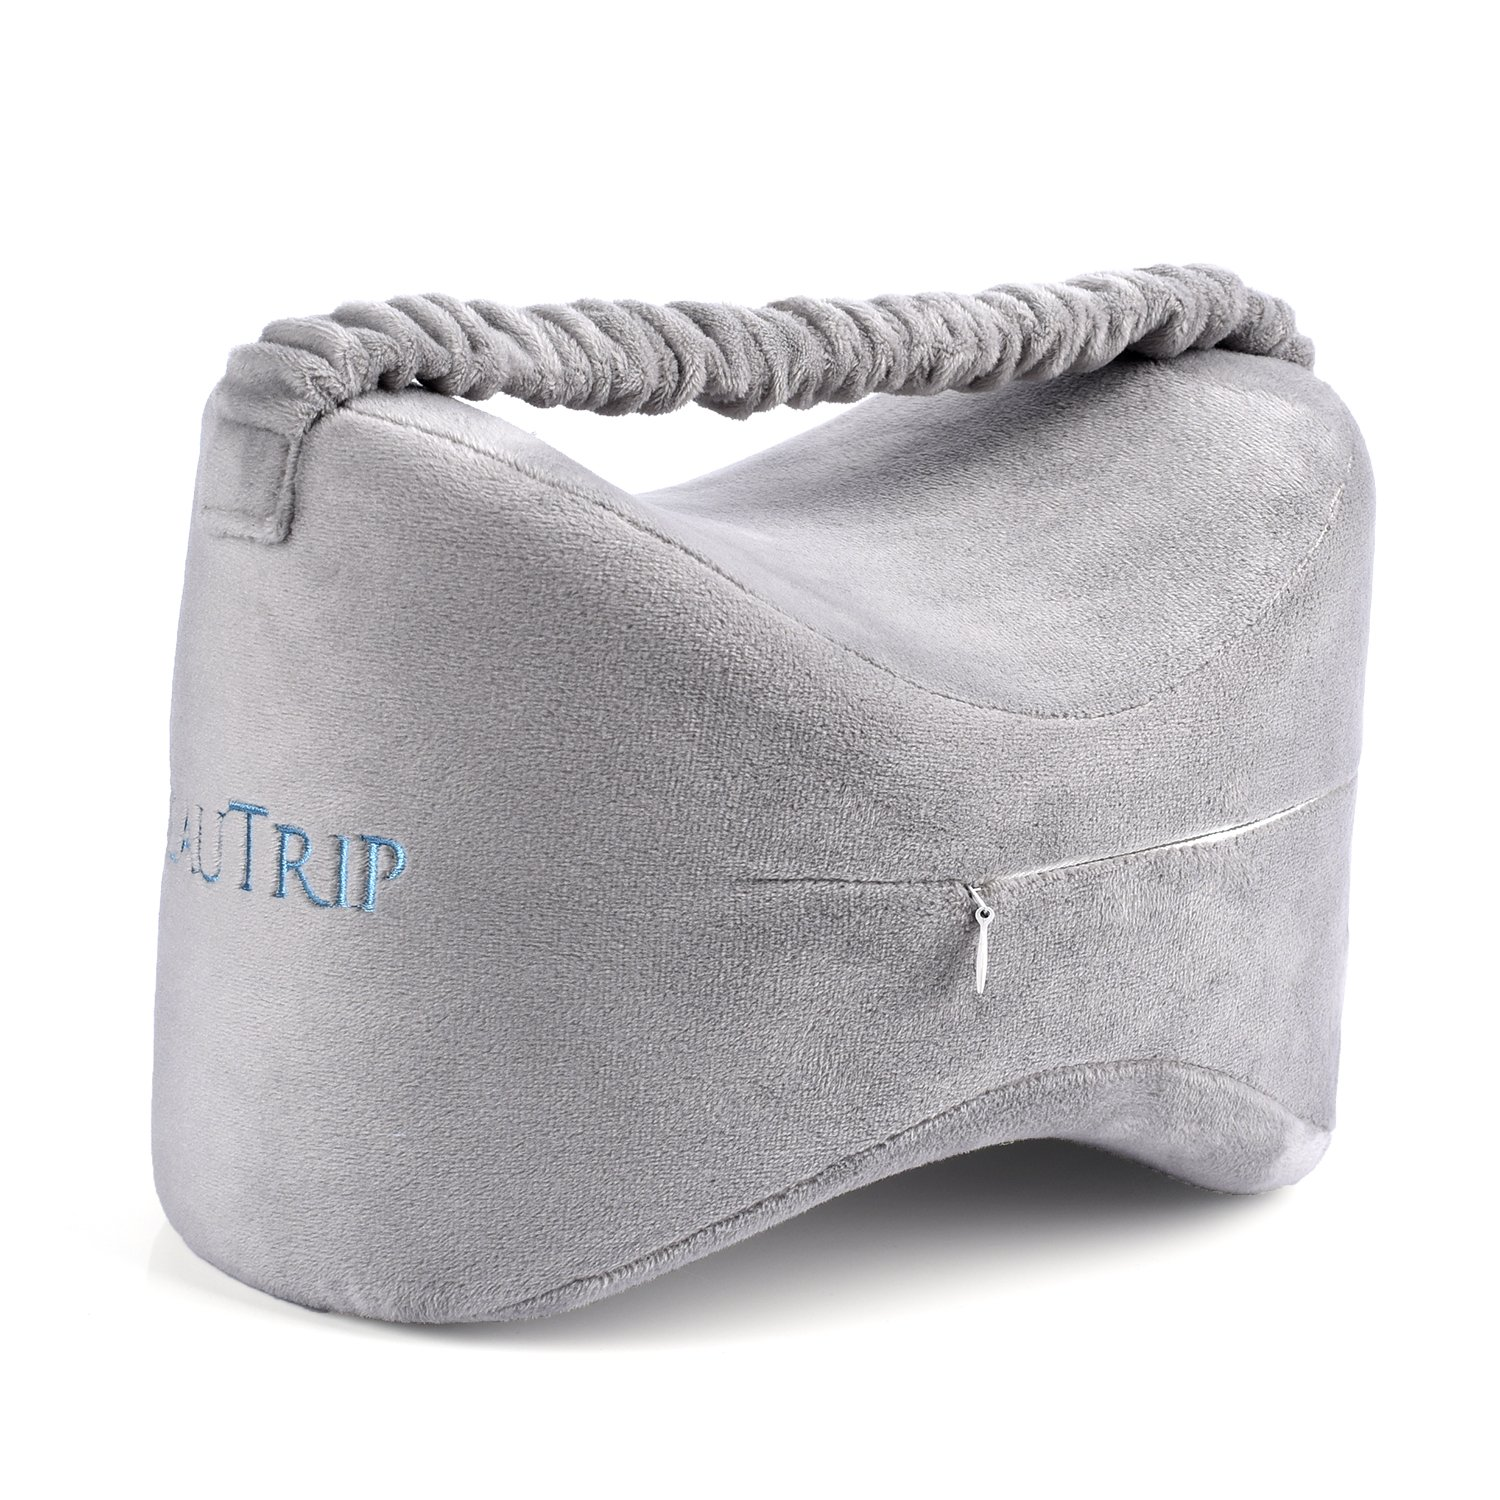 BEAUTRIP Knee Pillows for Side Sleepers Premium Memory Foam Wedge Contour Leg Pillow Cushions Support with Washable Cover for Sciatica Back Hip Joint Knee Pain Relief MOCHO INC. B18-K